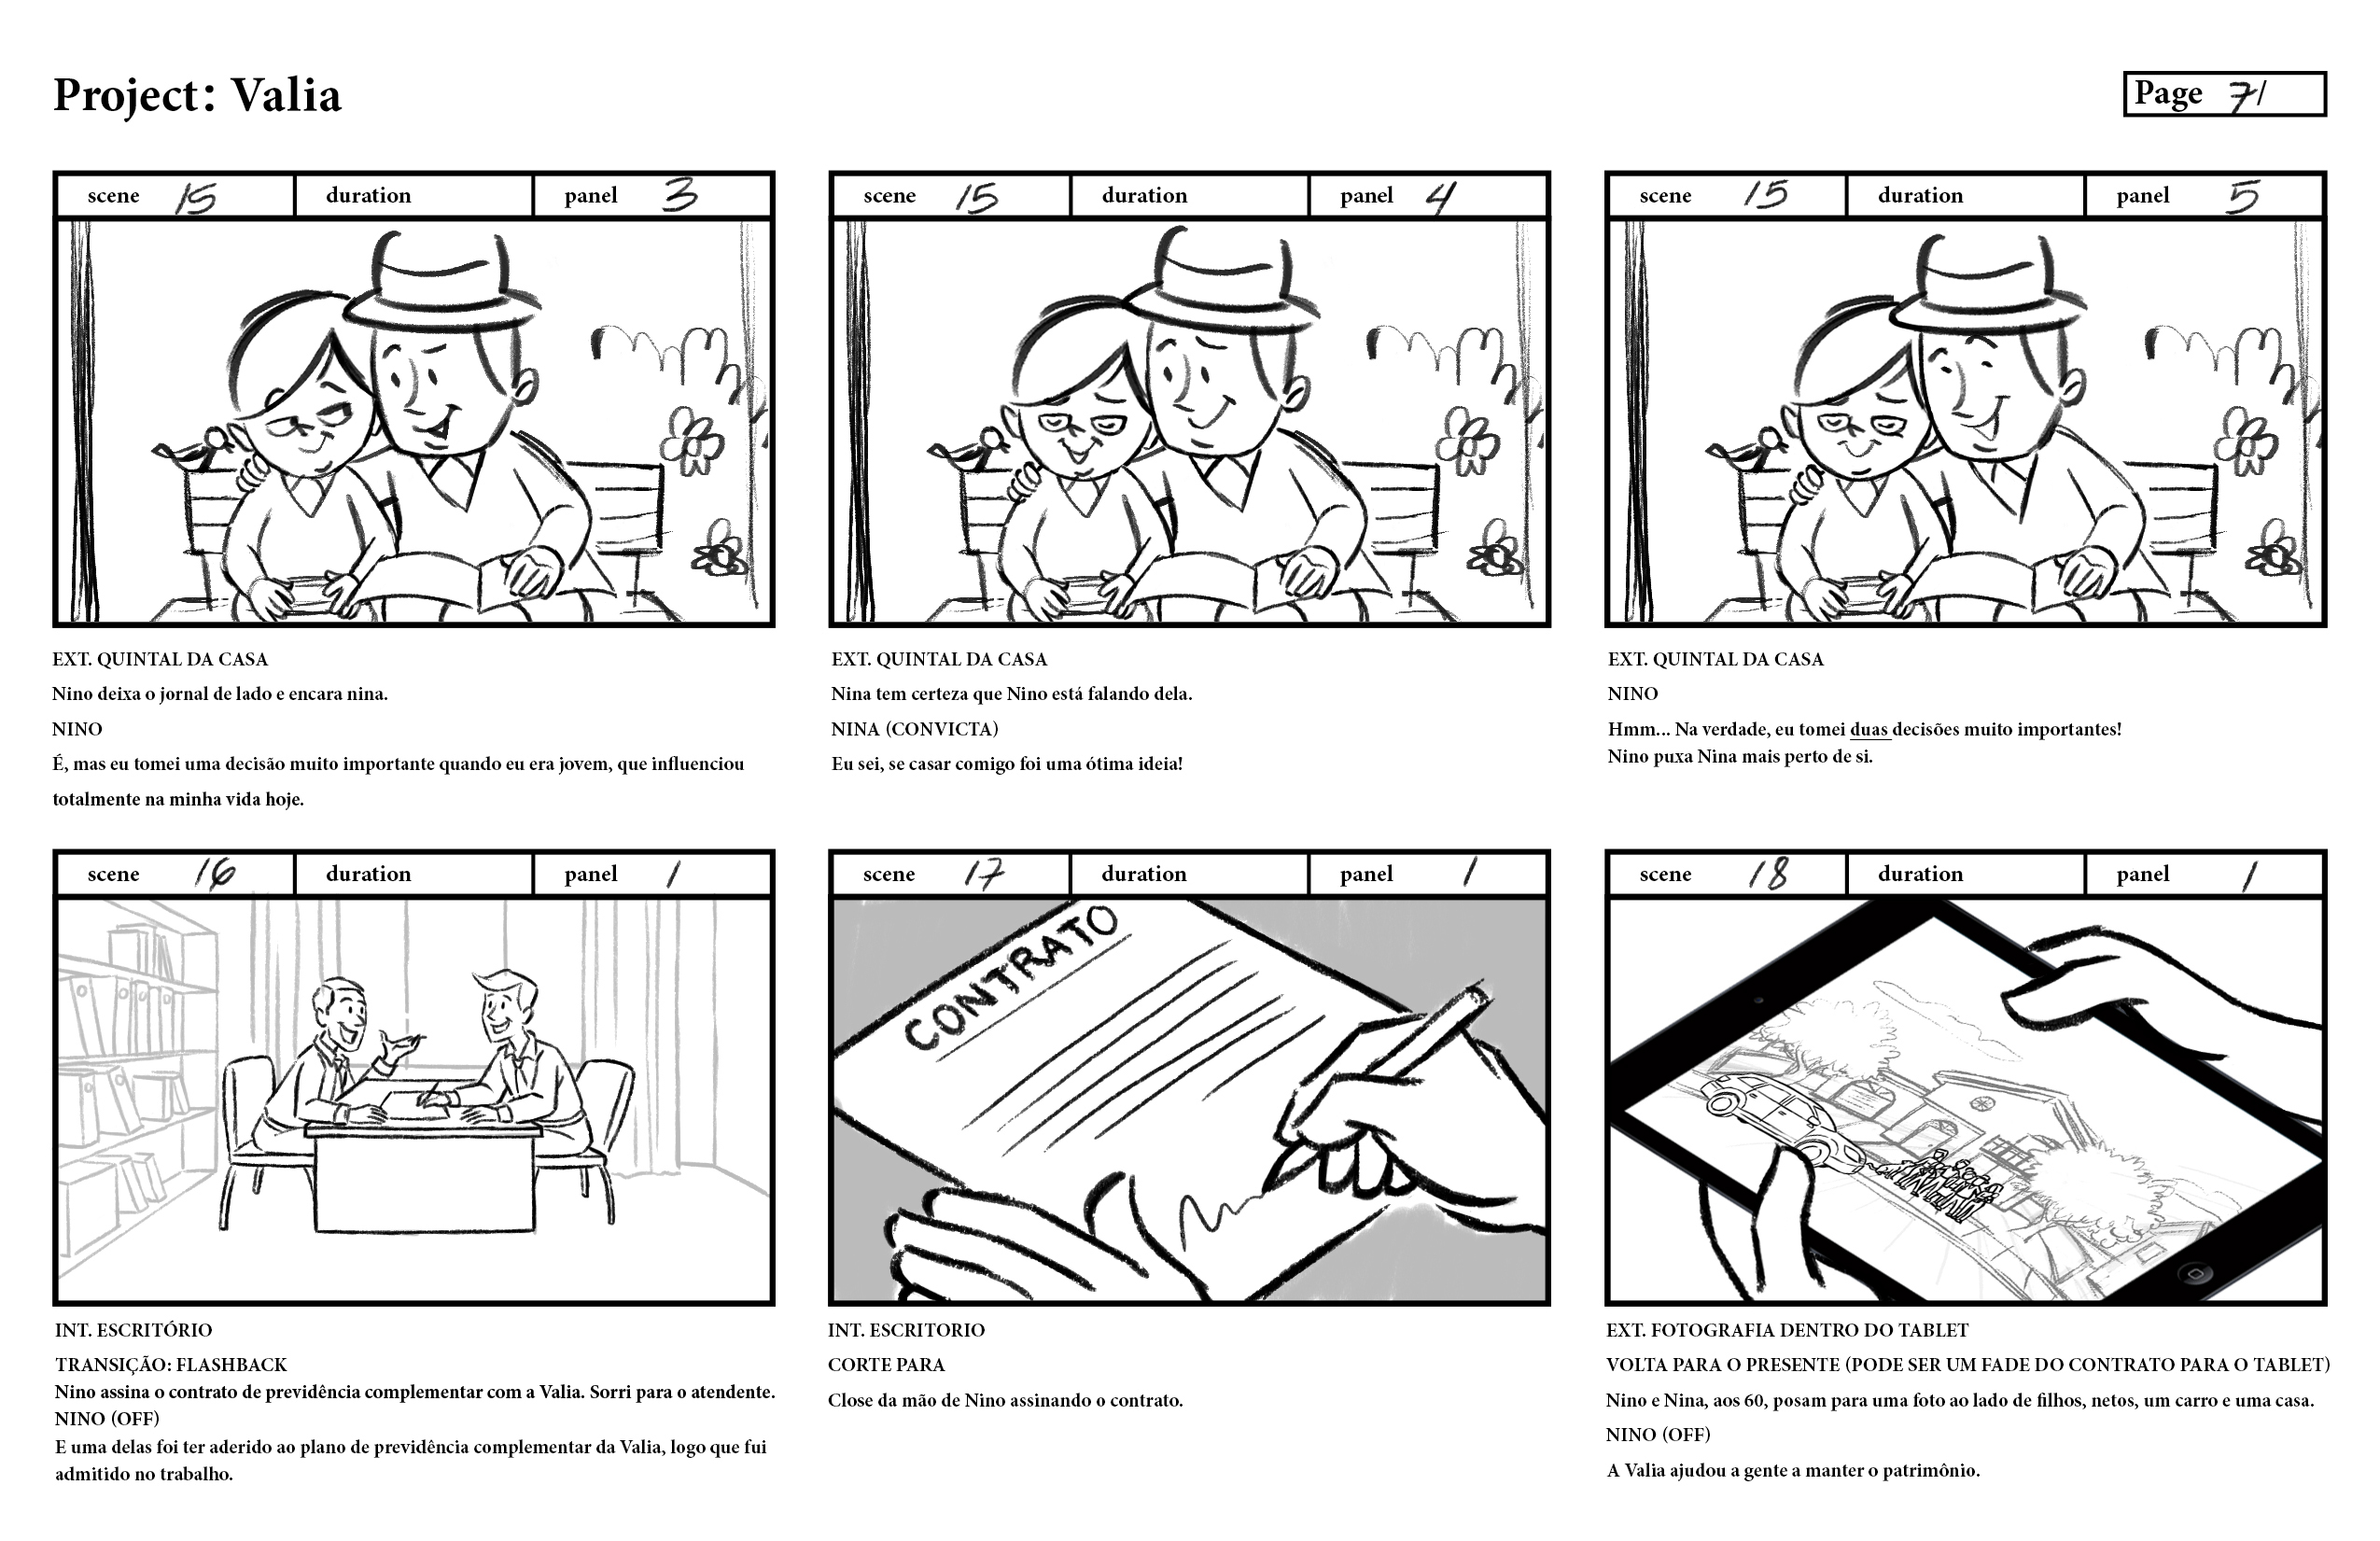 storyboard for a private insurance plan, to be animated with motion graphics